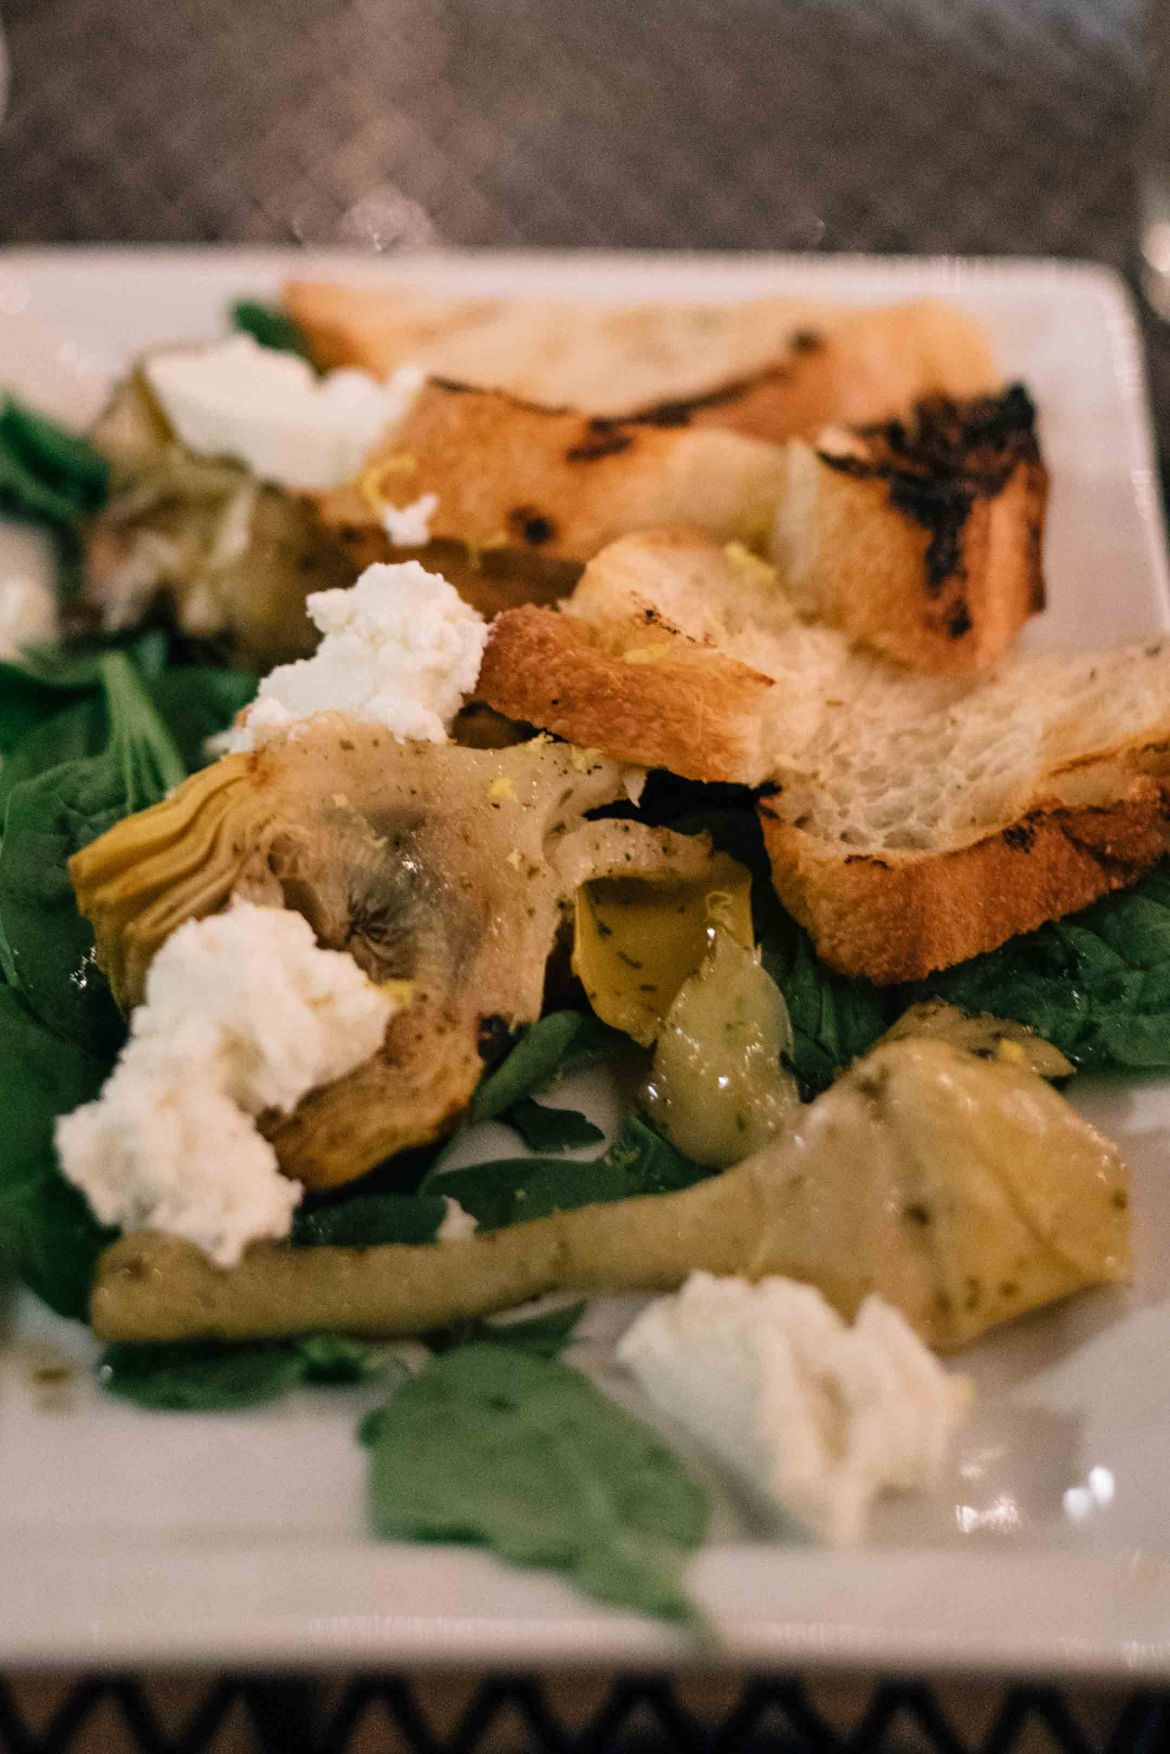 Photographers and bloggers from The Taste Edit visited one of the best restaurants in Albuquerque - Farm and Table. Try this small plate of artichoke hearts, ciabatta, and goat cheese.